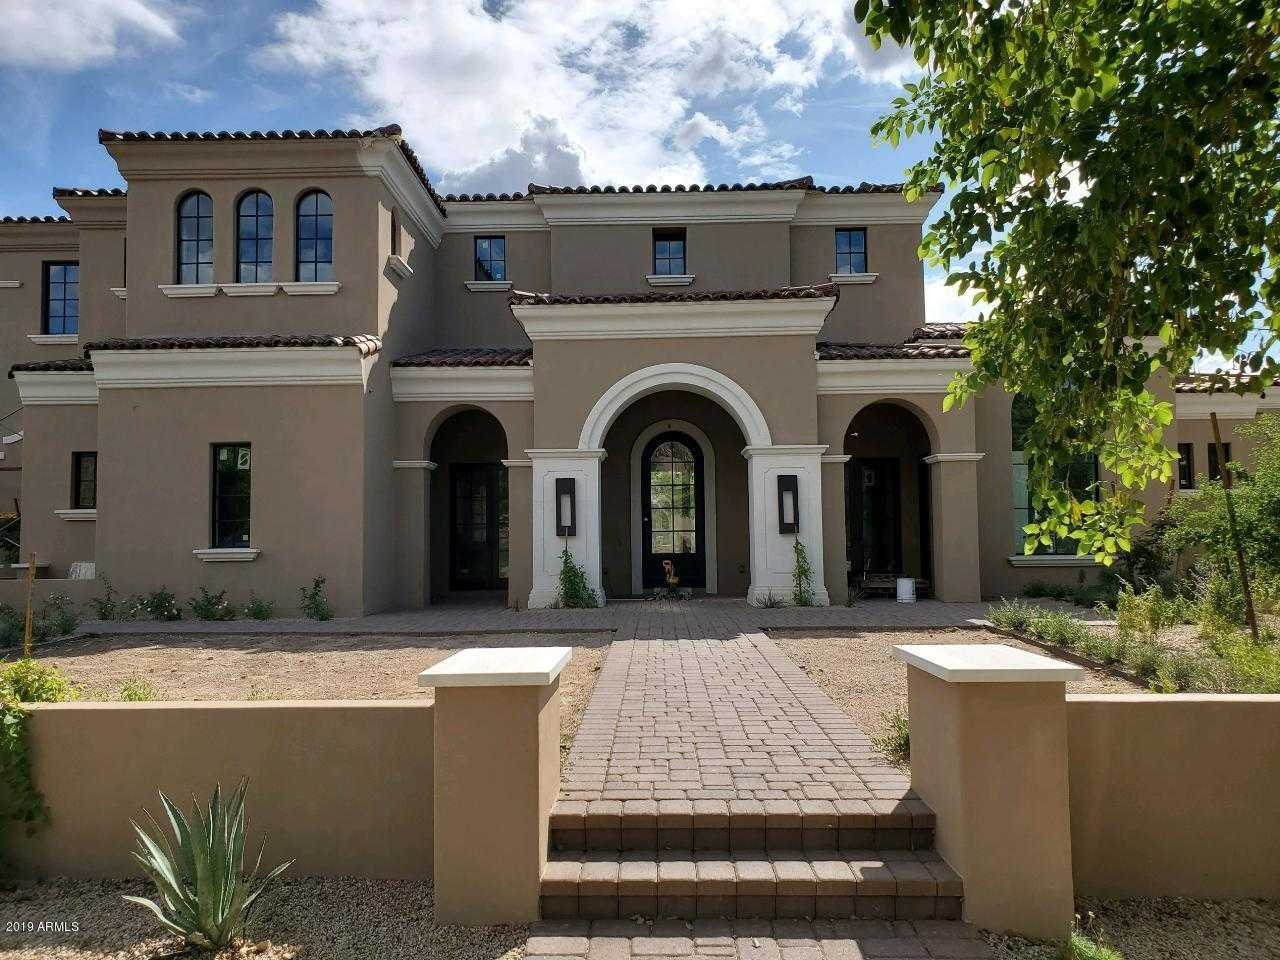 $3,950,000 - 5Br/7Ba - Home for Sale in Silverleaf At Dc Ranch, Scottsdale